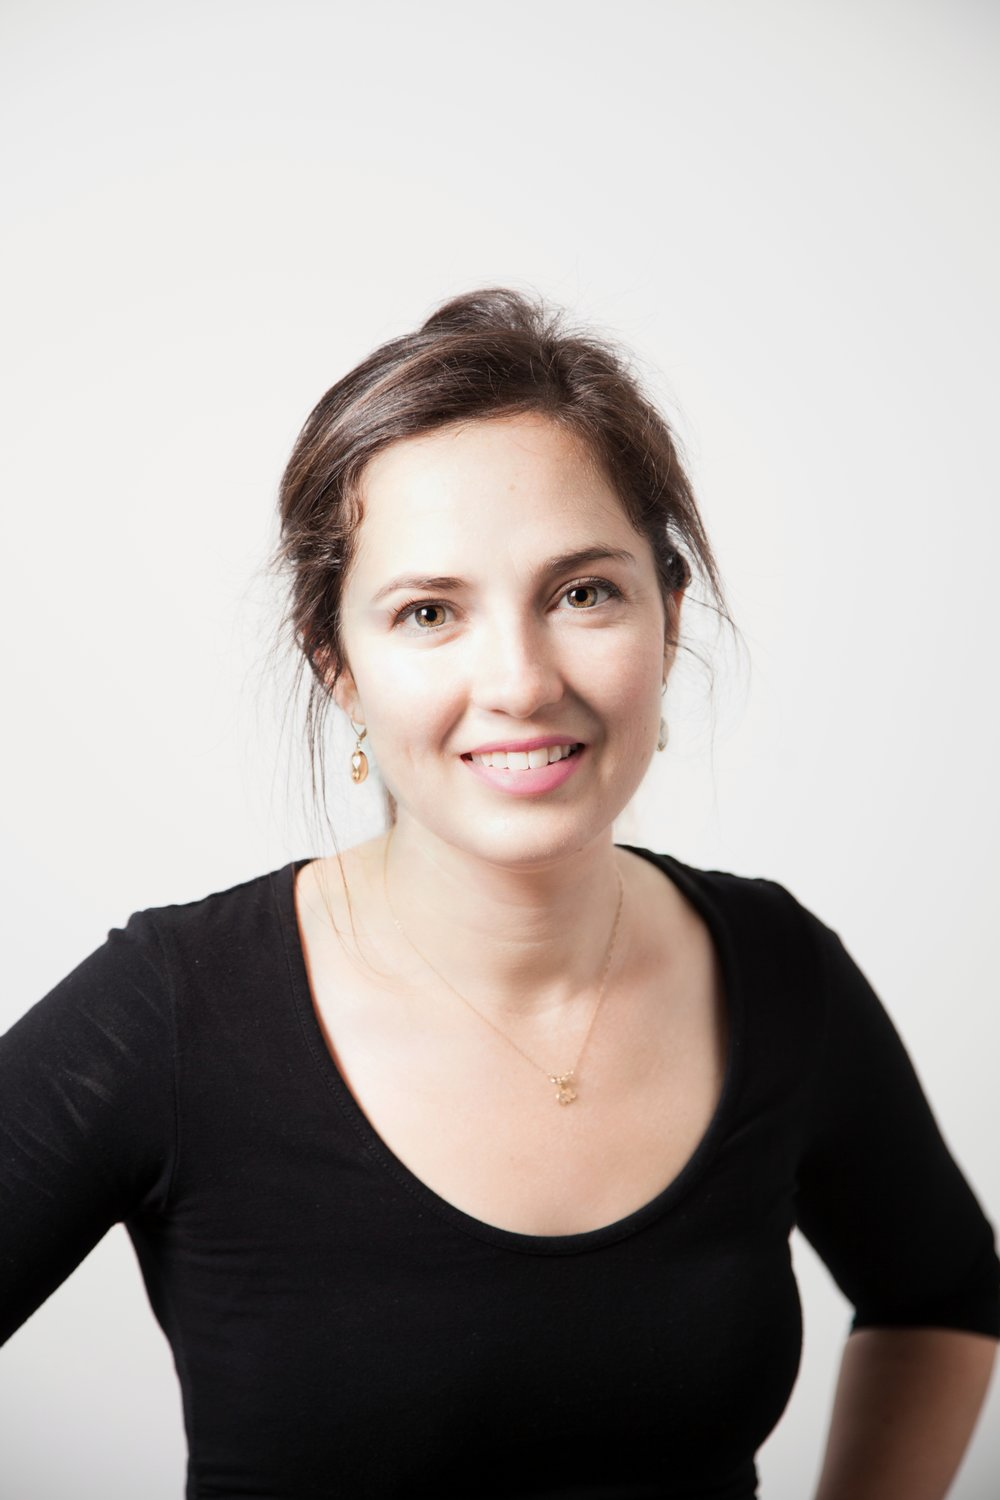 Doctor Sewell is a diabetes focused female GP based at the Diabetic GP medical centre in Hyde Park